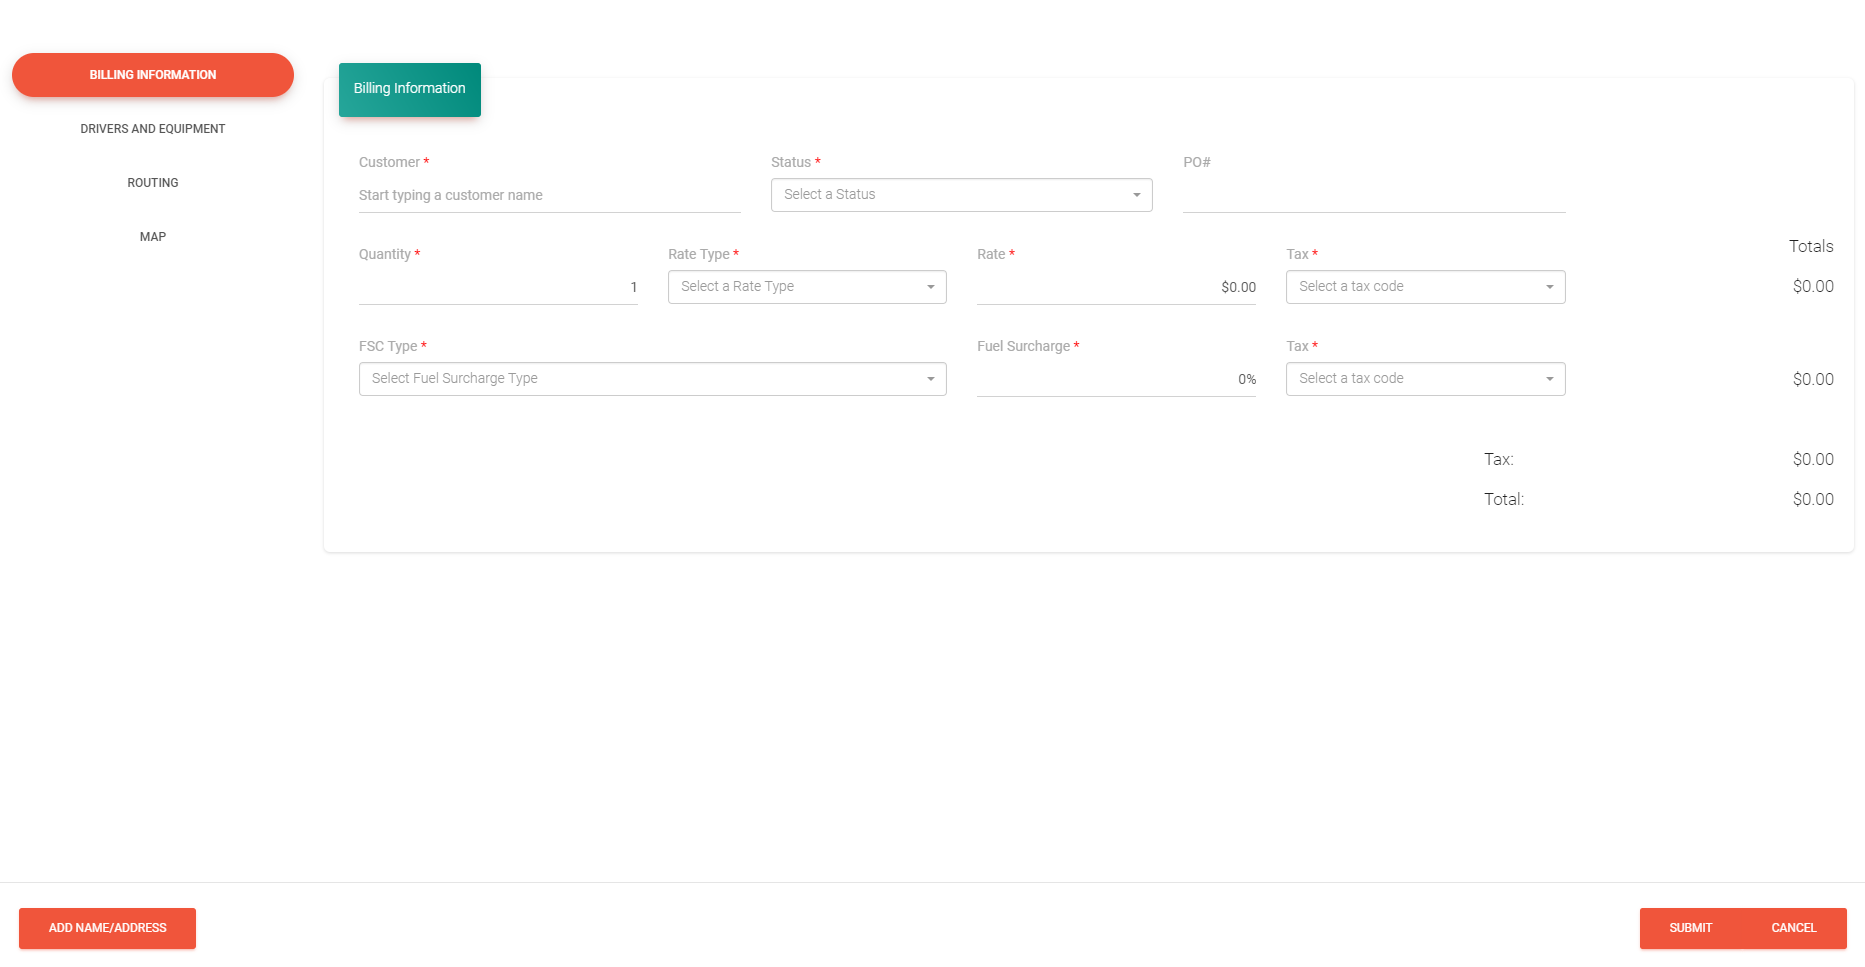 Creating a load has never been simpler - just enter the billing info, drivers assigned to the load and your routing info which is then automatically generated on a map for a visual of the load route.